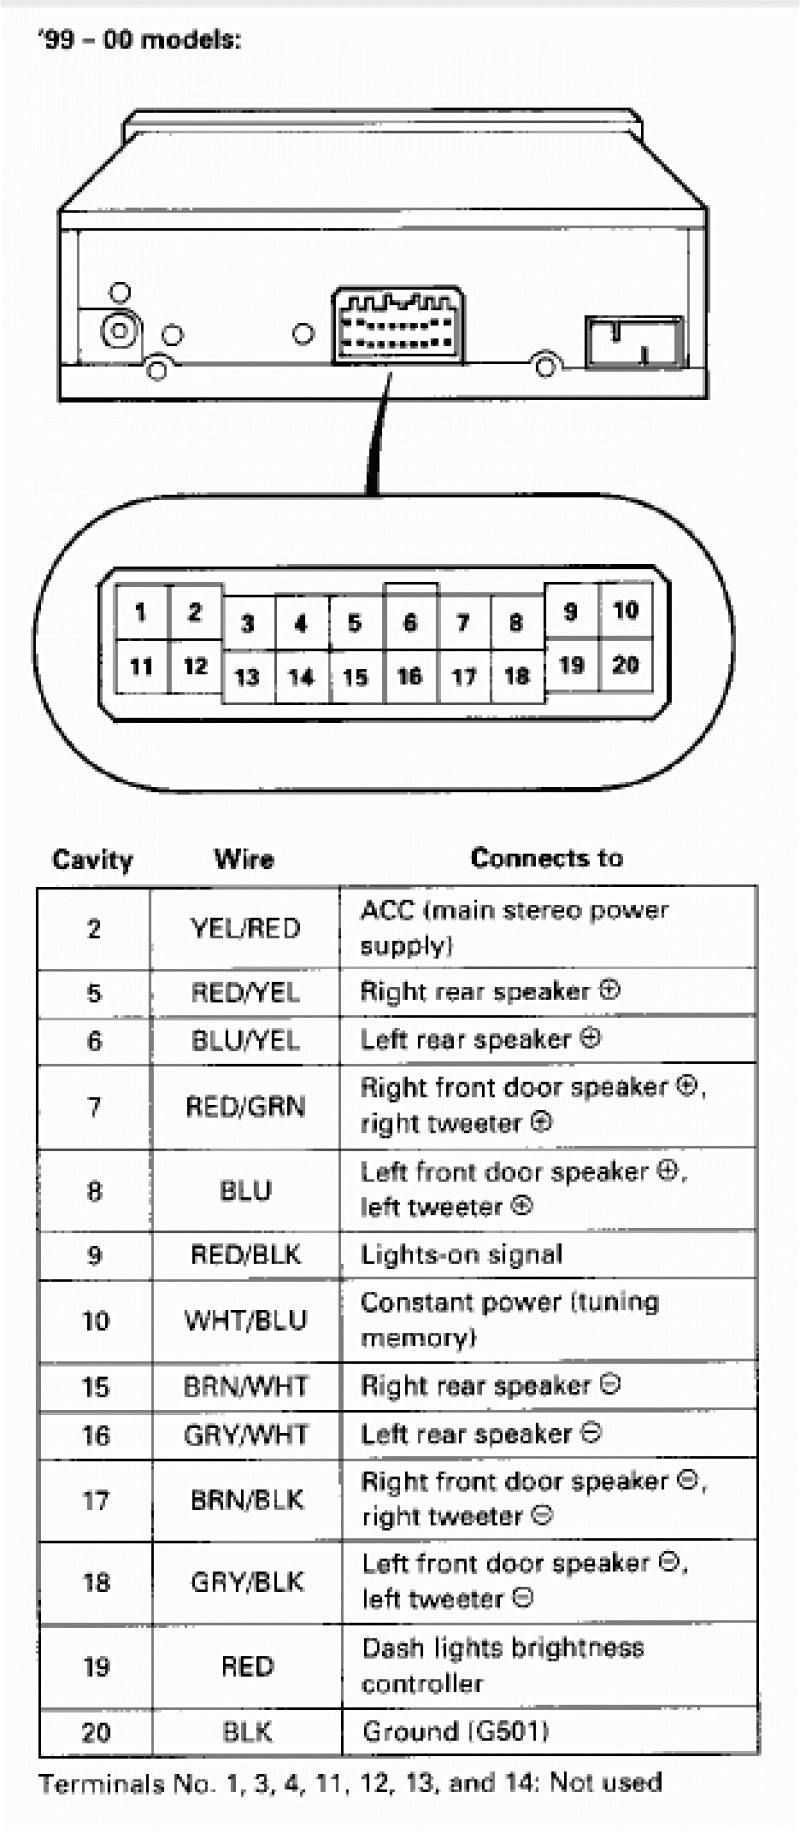 pin by k brown on 1999 honda civic radio honda, 1999 honda civic 98 Honda Civic Wiring Diagram